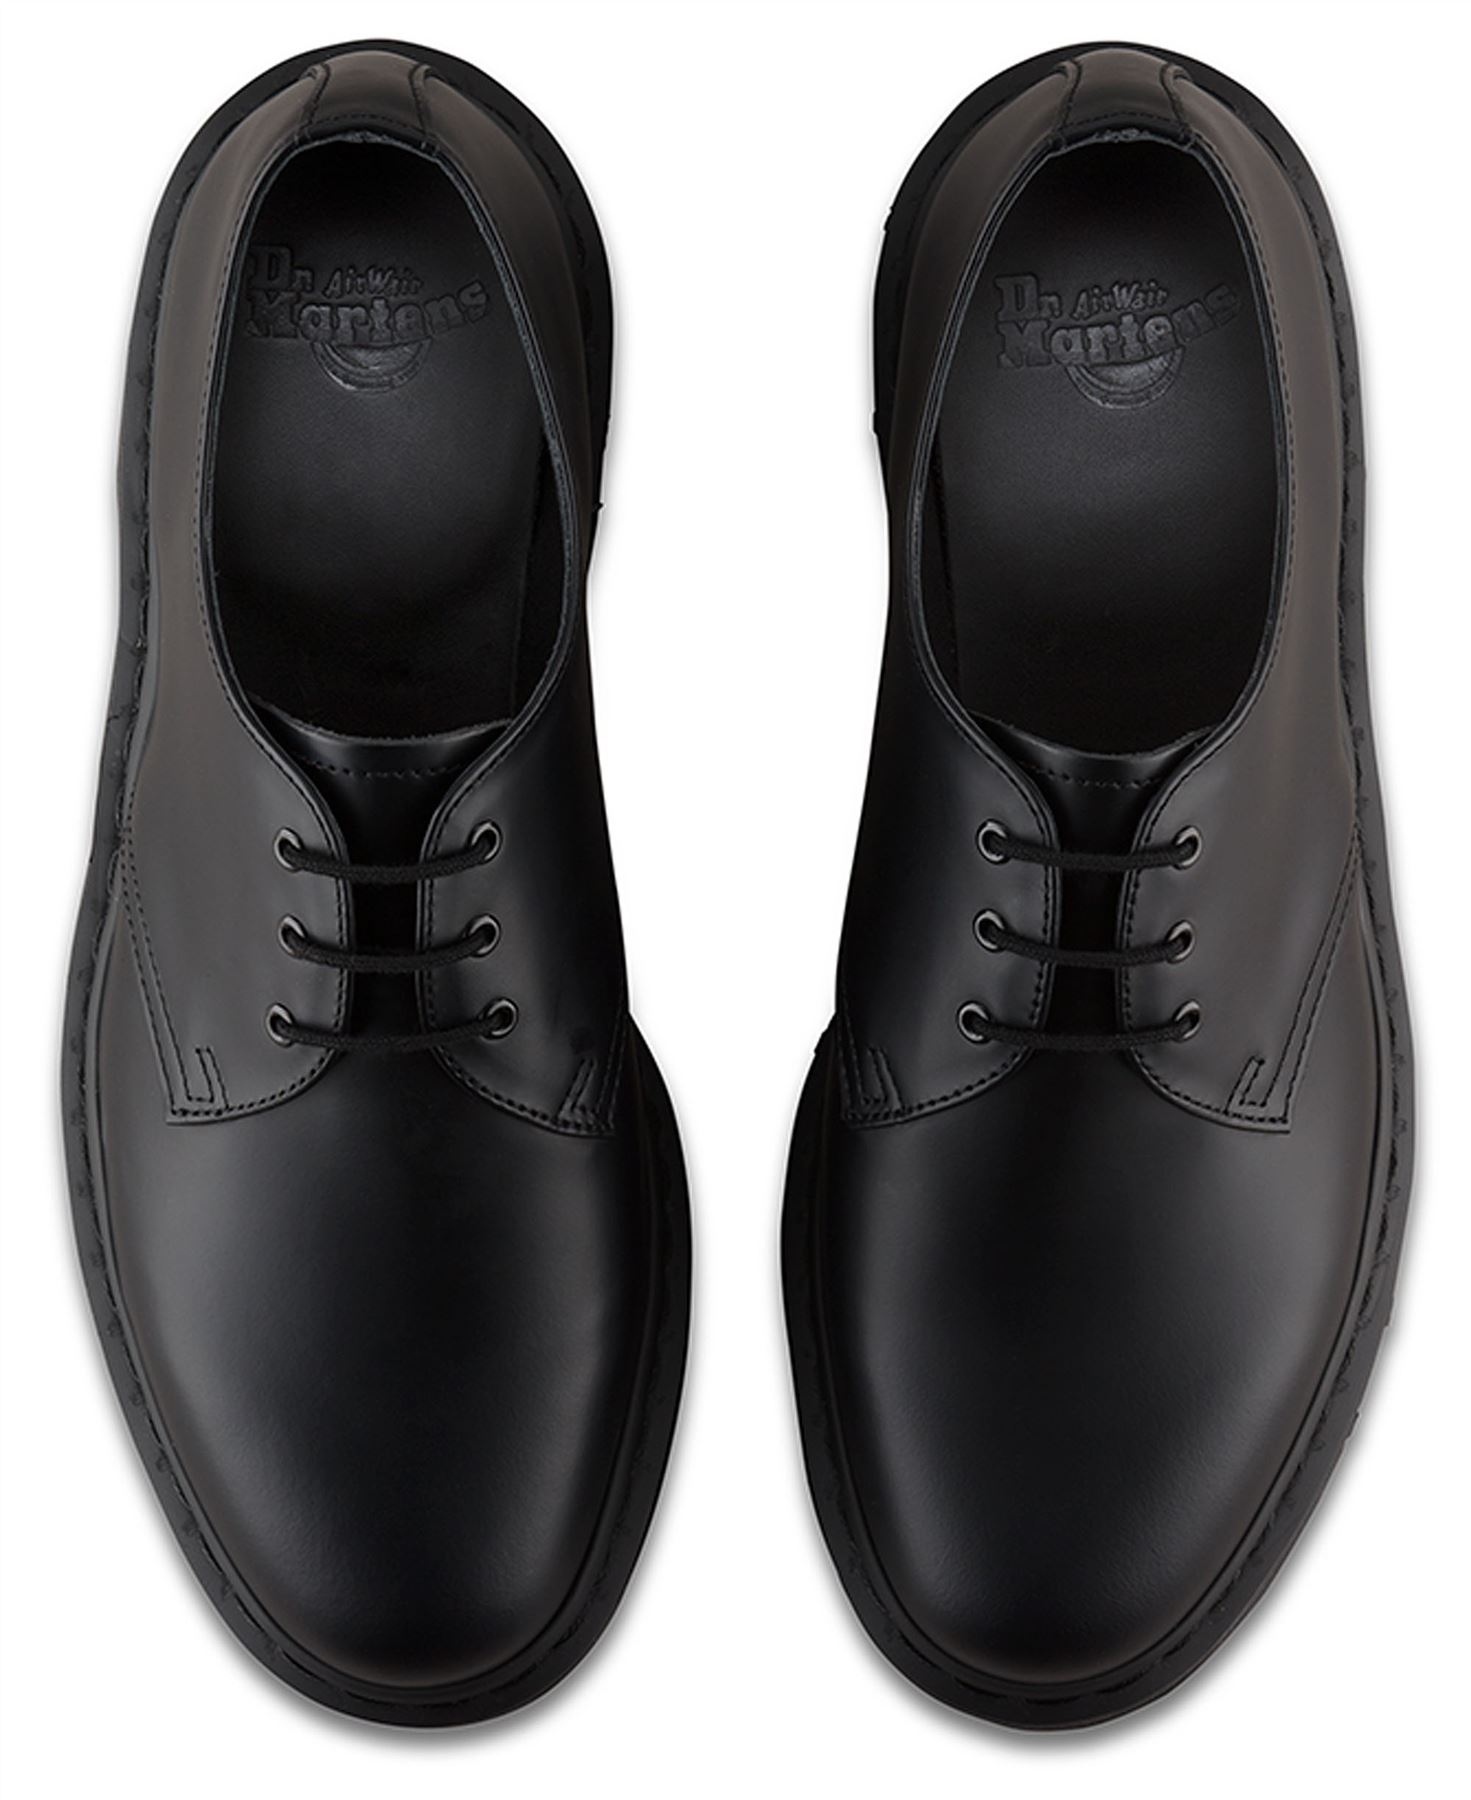 8aee15a9f5428 Dr Martens Mens 1461 Black Mono Smooth Leather Shoes   eBay